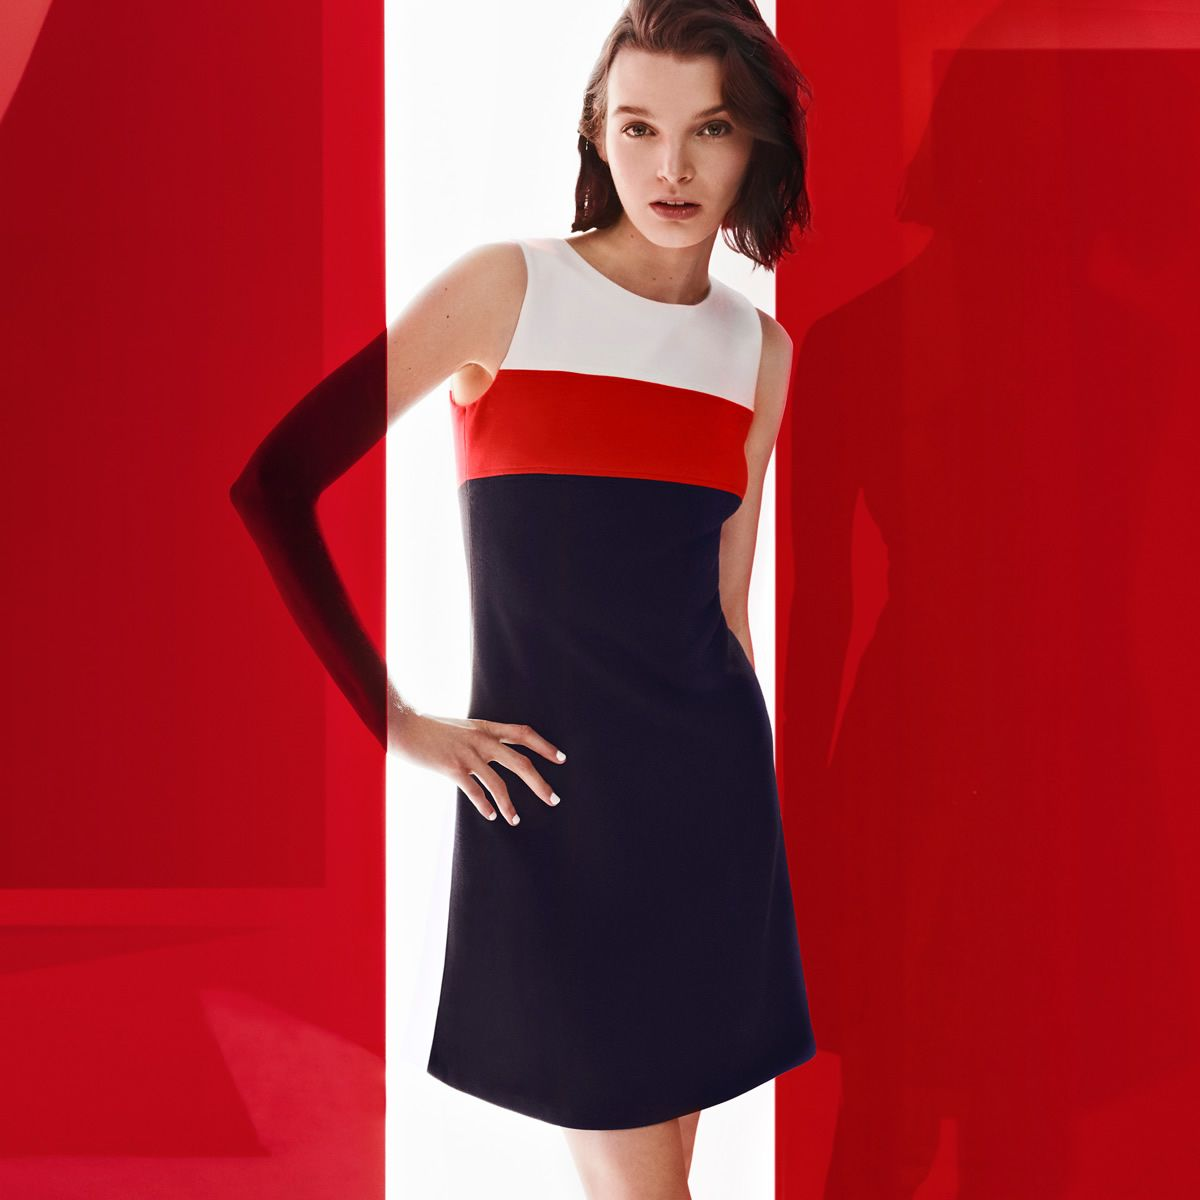 43ed9083 Tommy Hilfiger Dresses for Women - Macy's